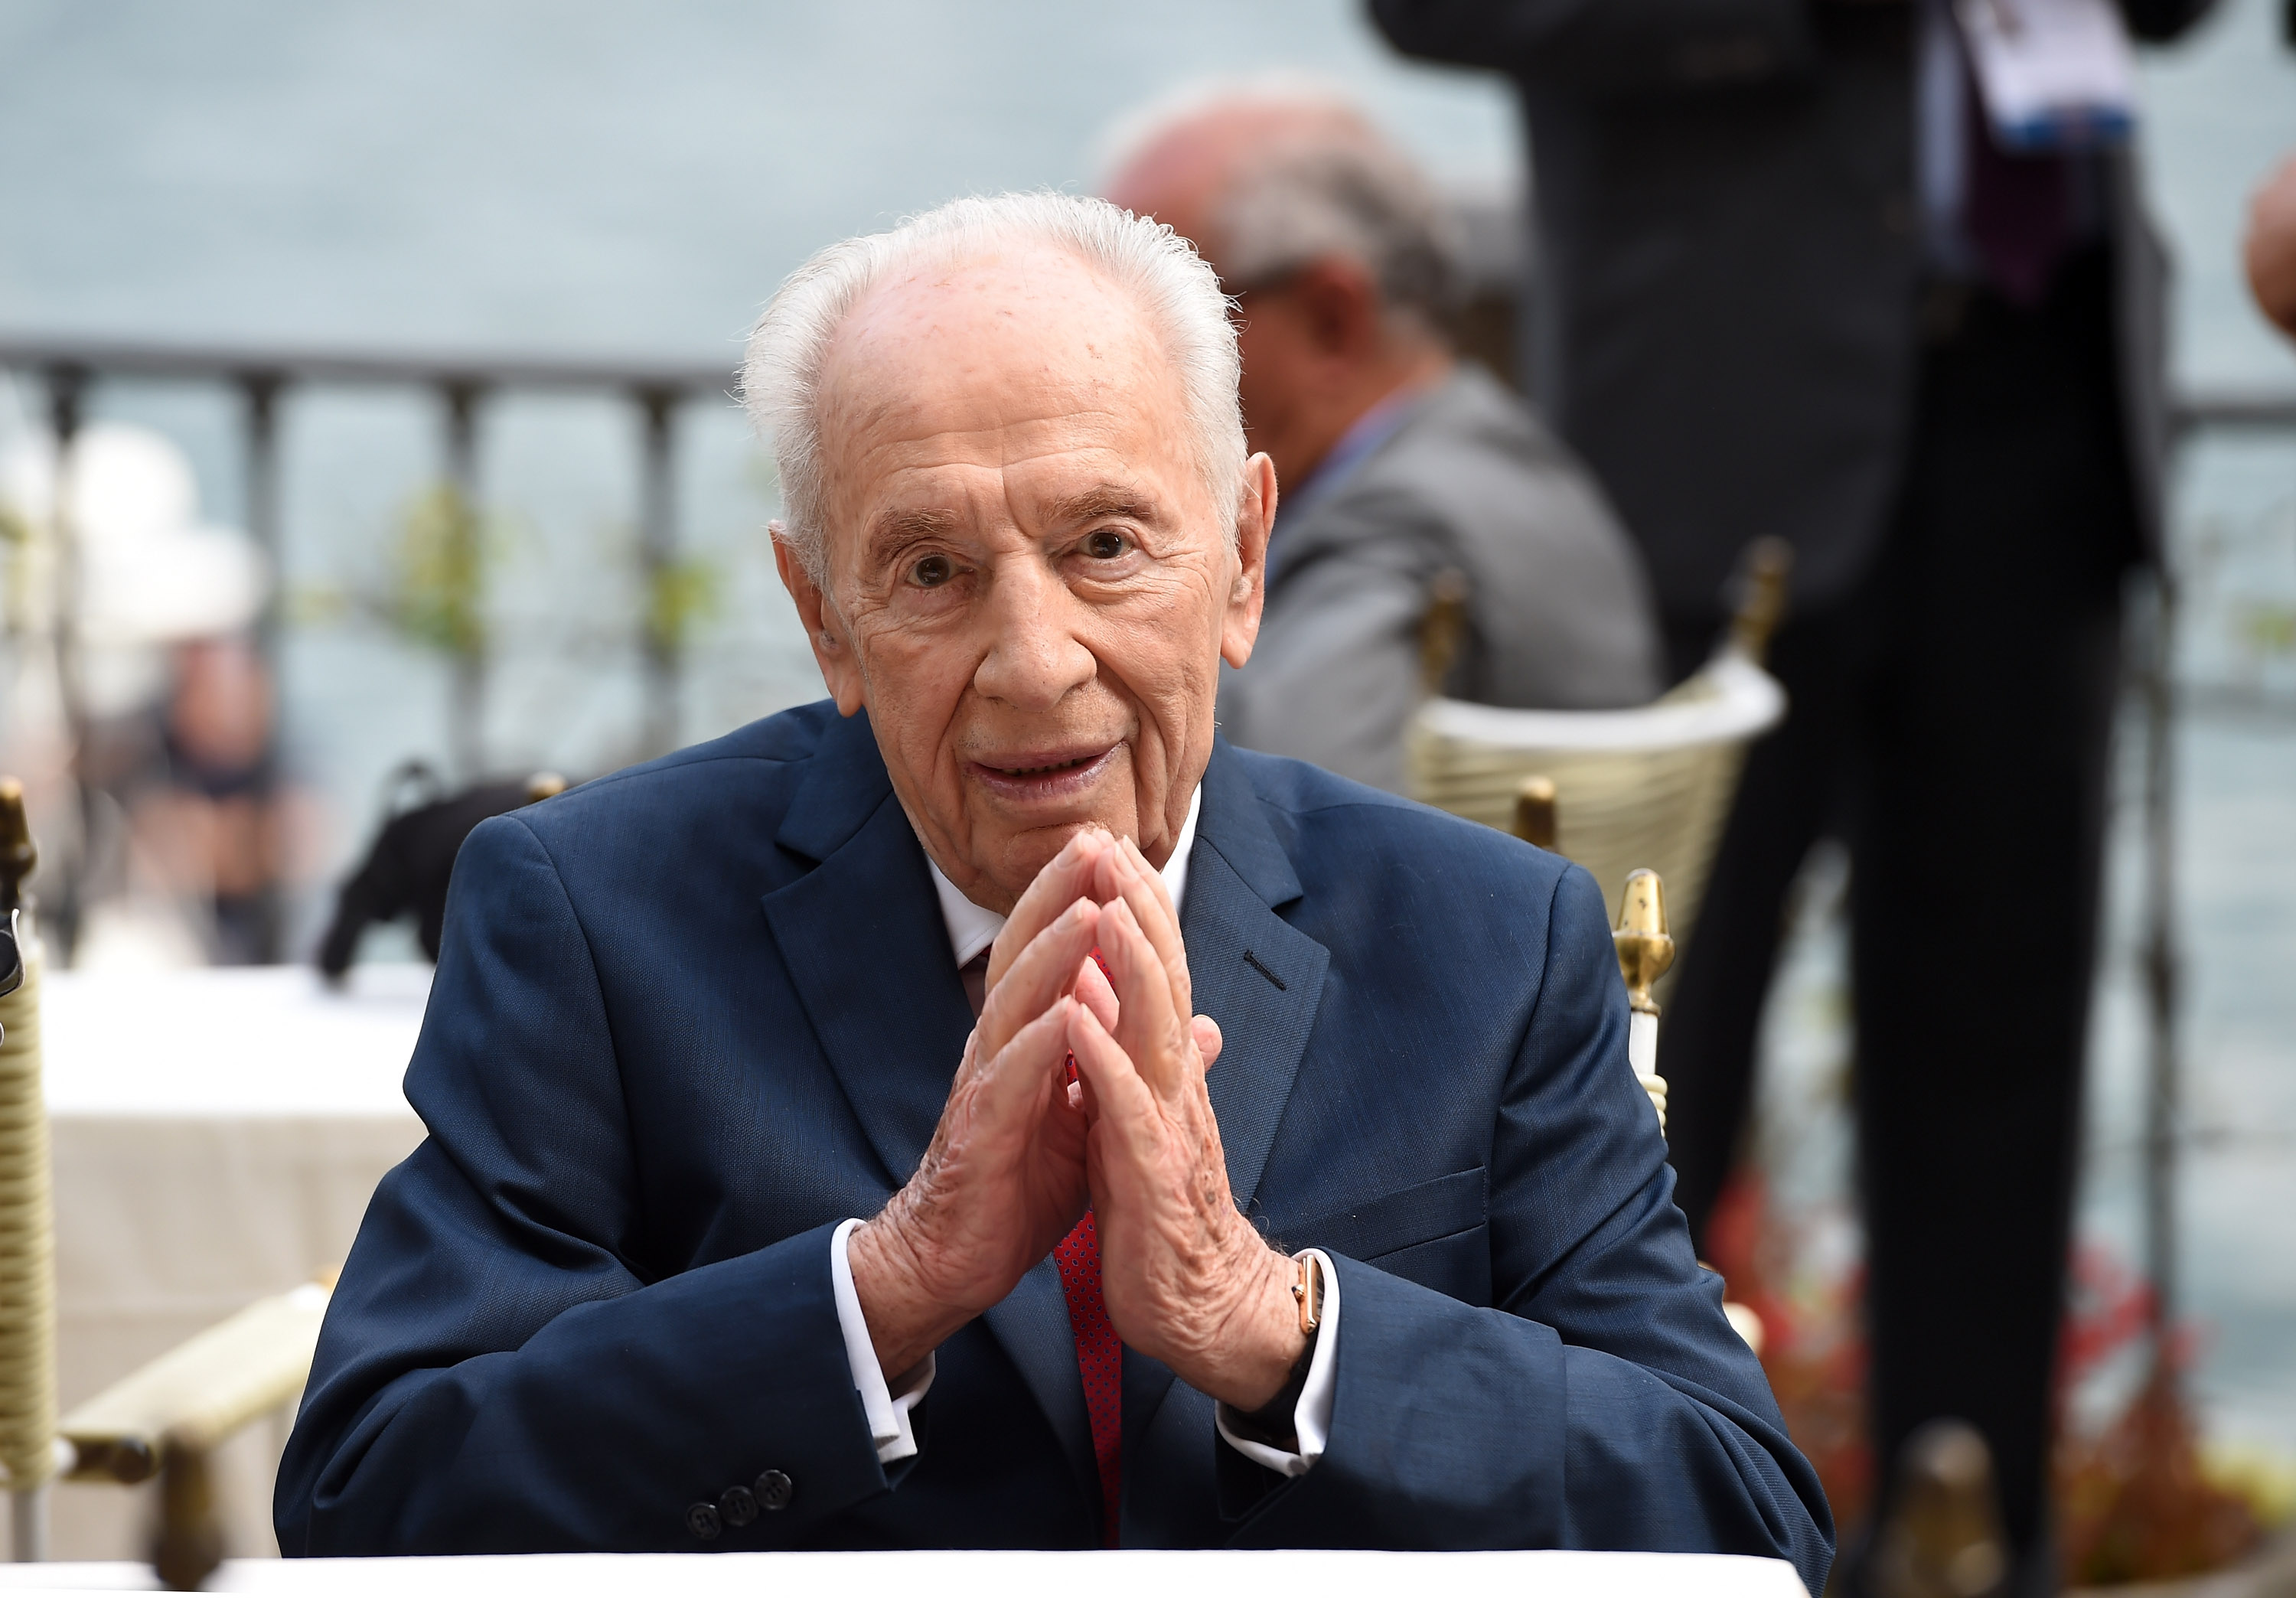 Former President of Israel Shimon Peres attends the Ambrosetti International Forum on September 2, 2016 in Cernobbio near Como, Italy.